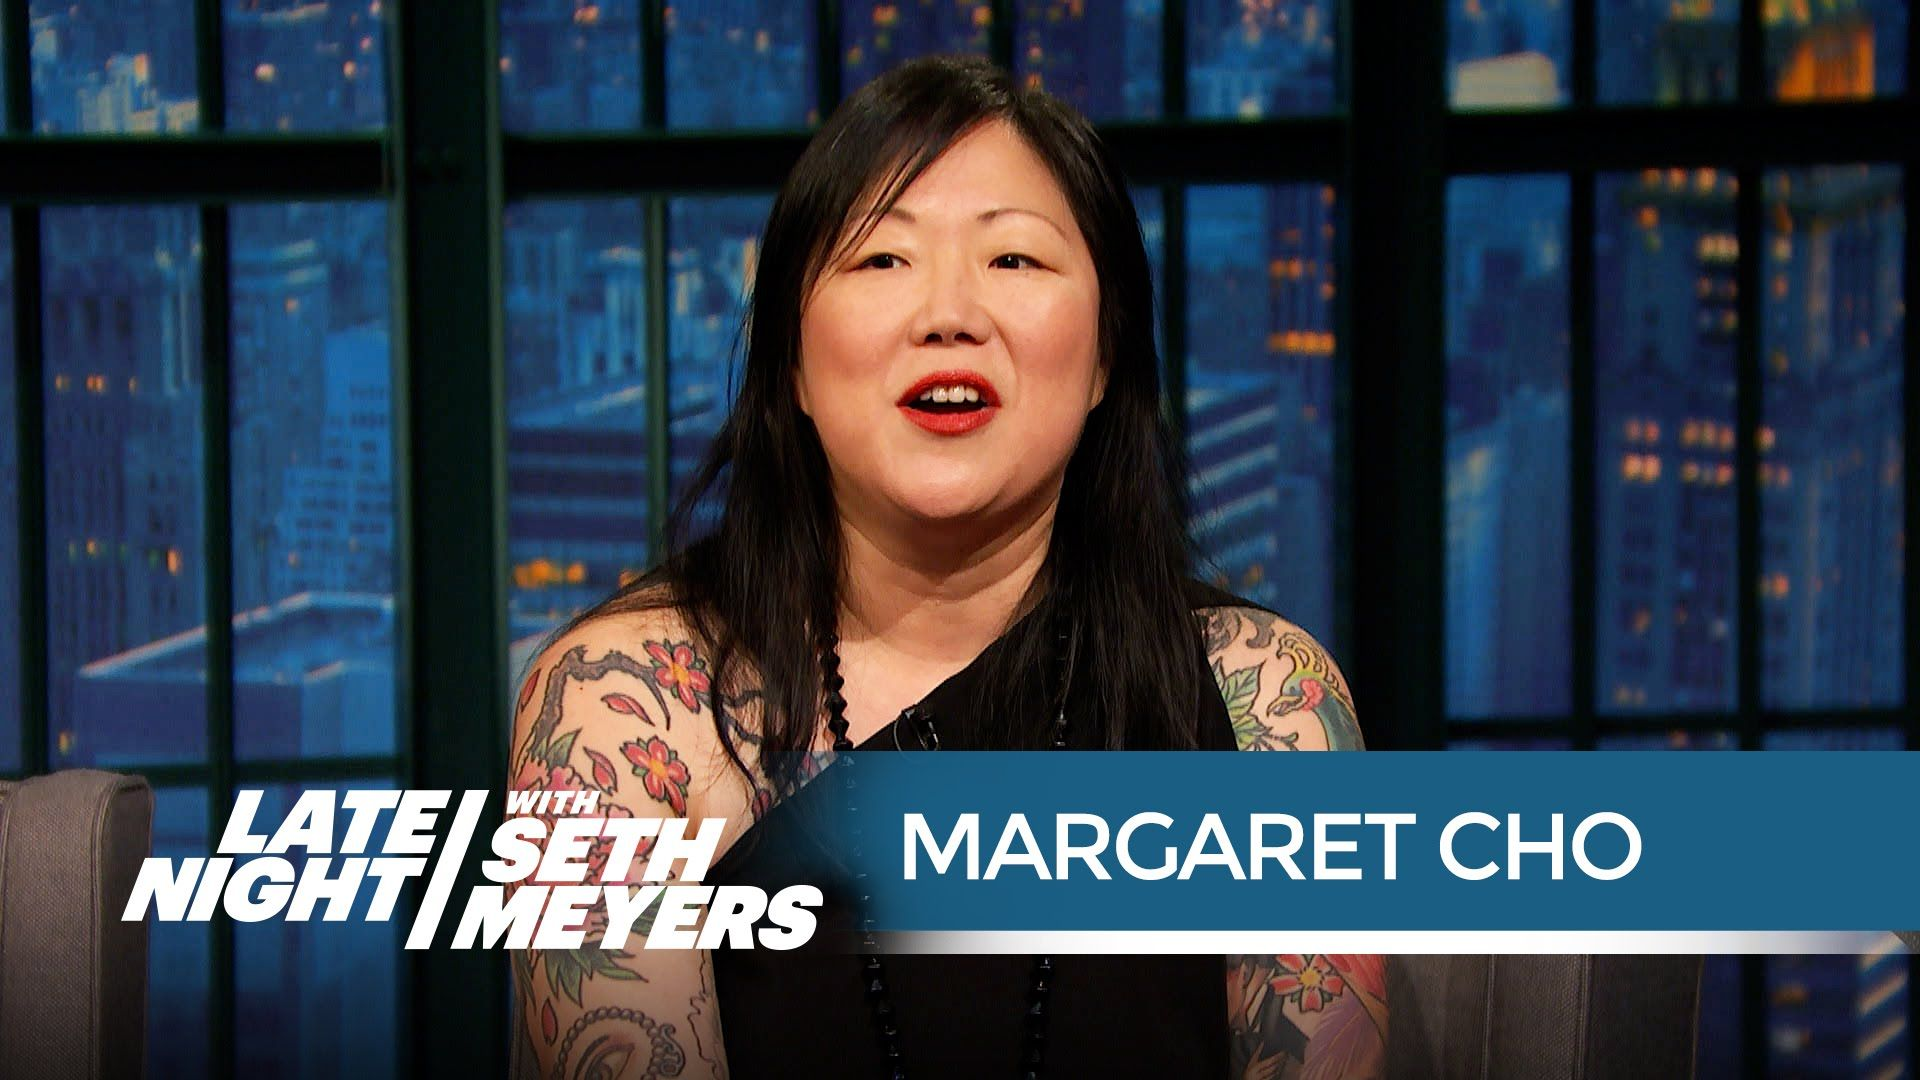 Margaret Cho on the Issue of Political Correctness in Comedy - Late Nigh...